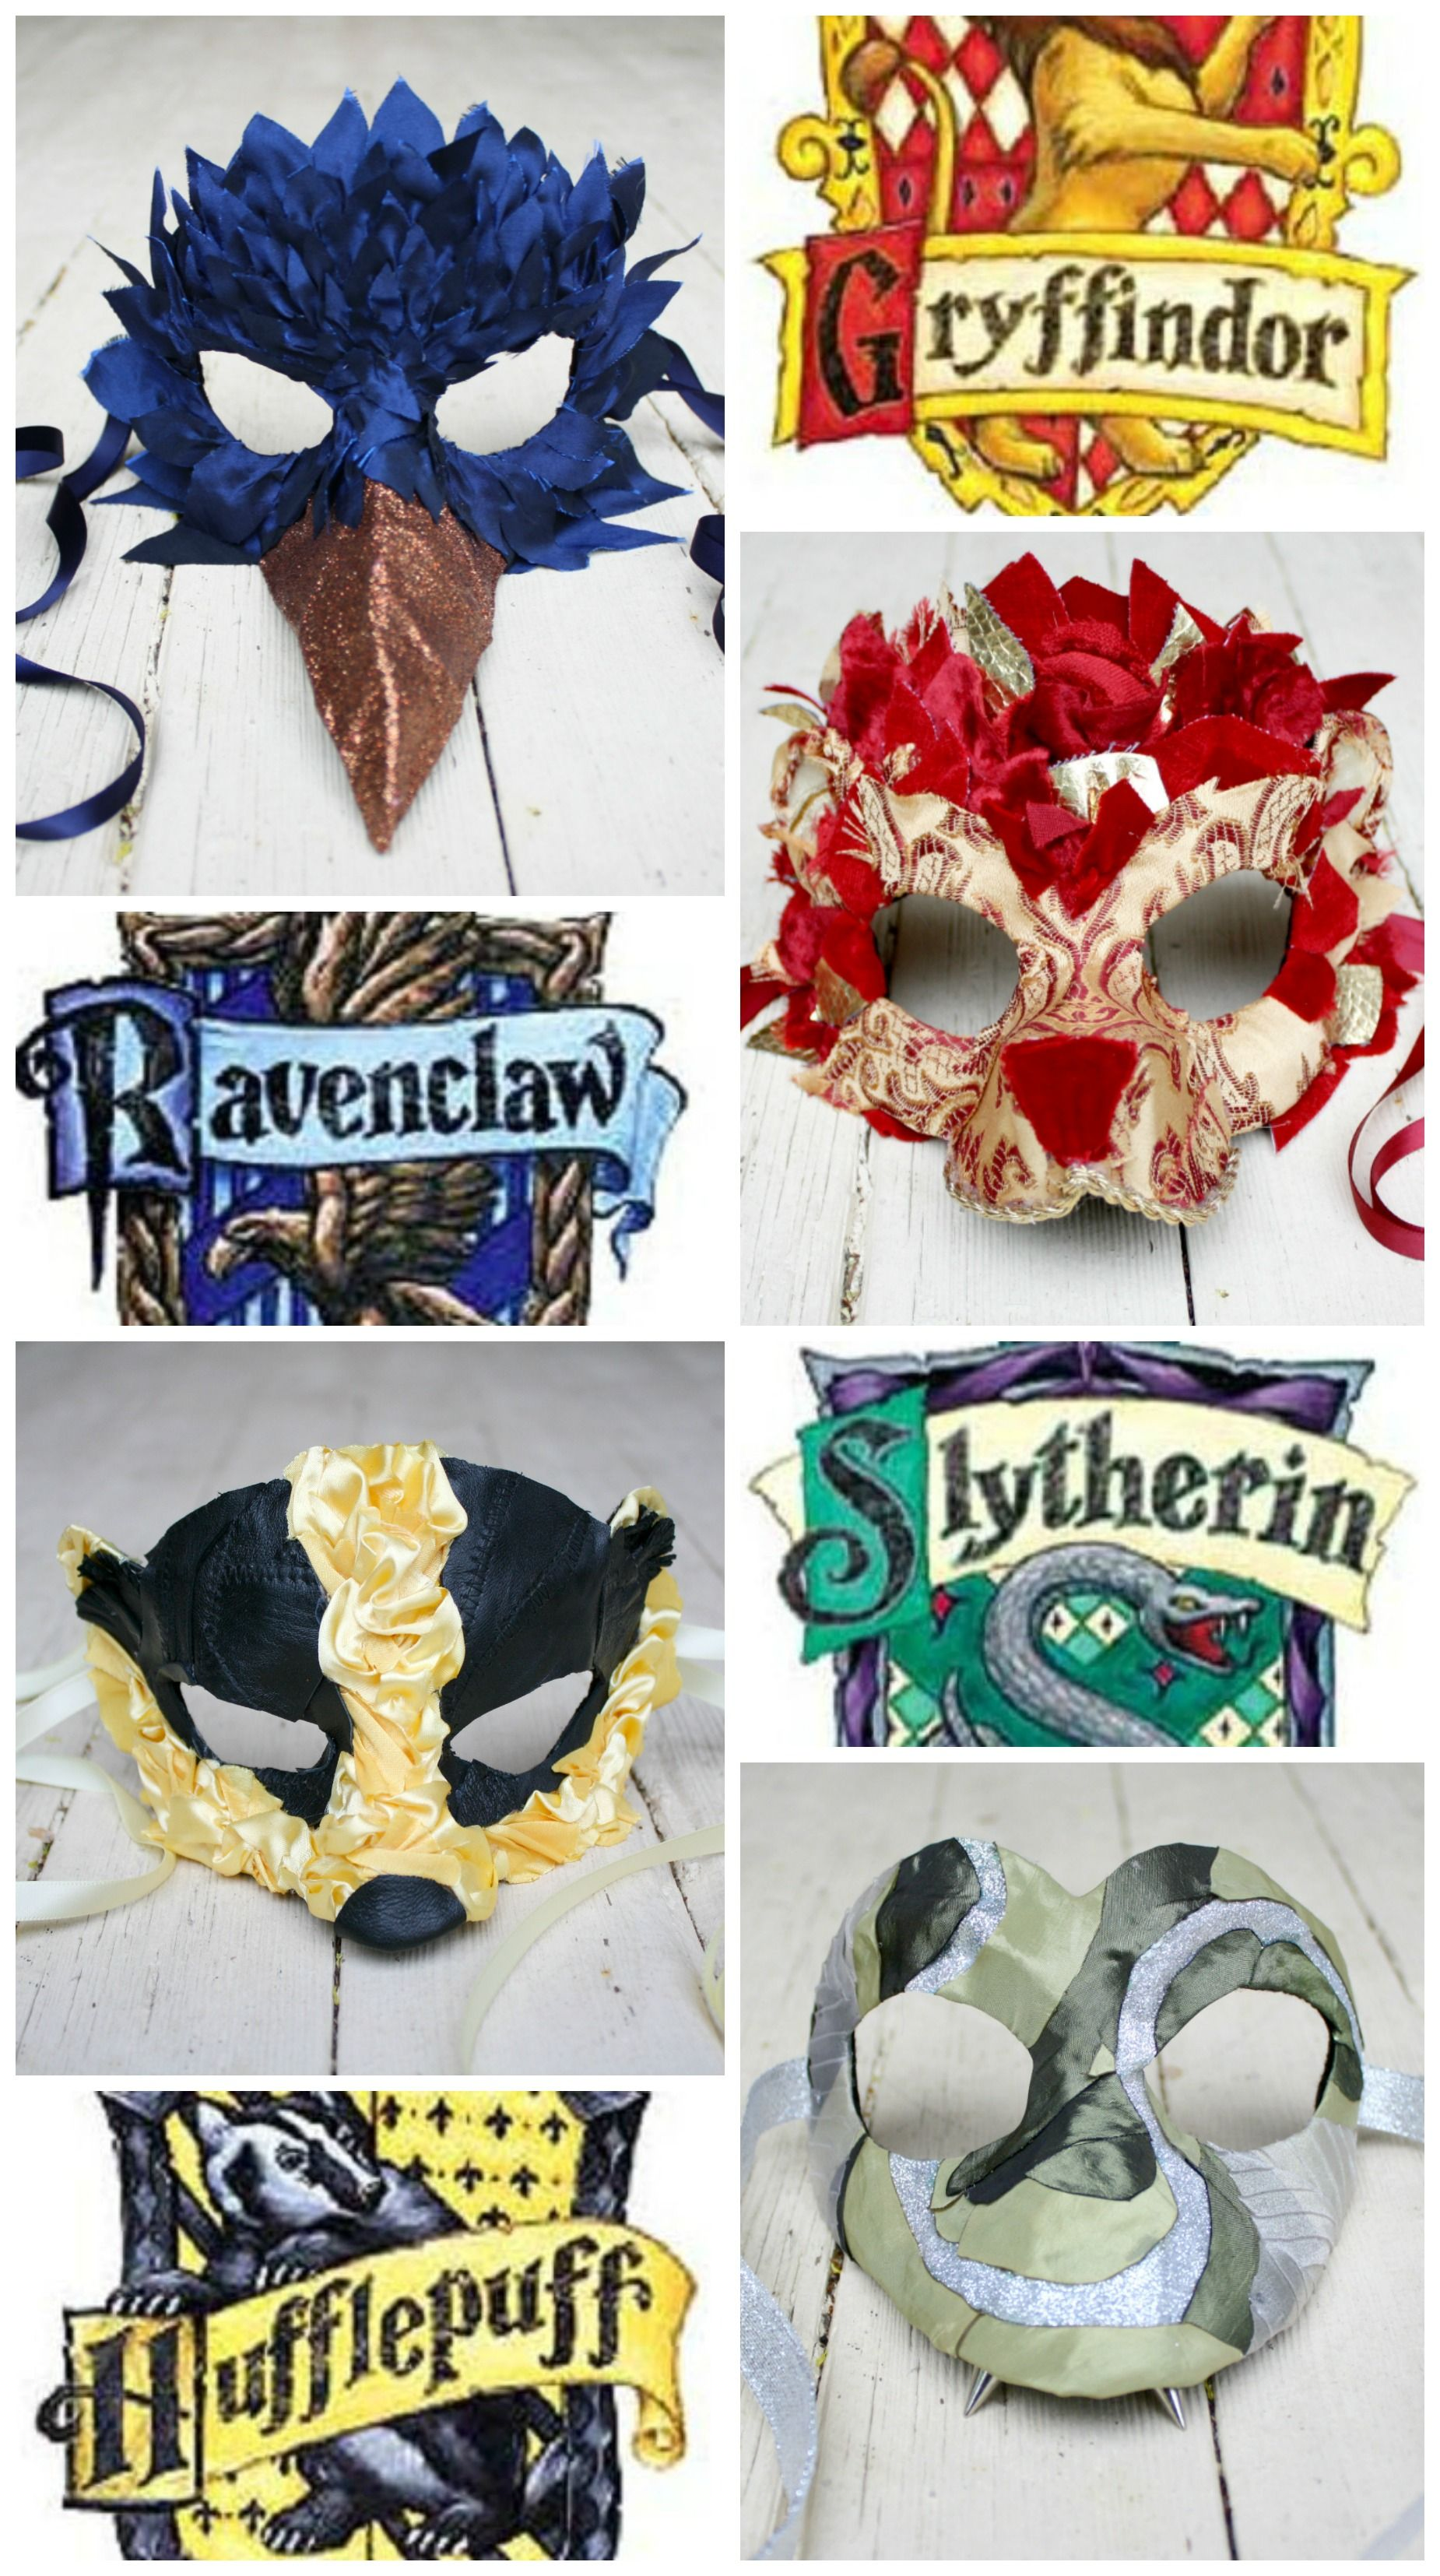 The Four Hogwarts Houses Revisited ~ One of a kind masquerade ball masks inspired by Harry Potter and hand-created by mask artist Amanda Carroll (ArtisanMaskers) to benefit the Weber-Morgan Children's Justice Center.  https://www.etsy.com/shop/artisanmaskers